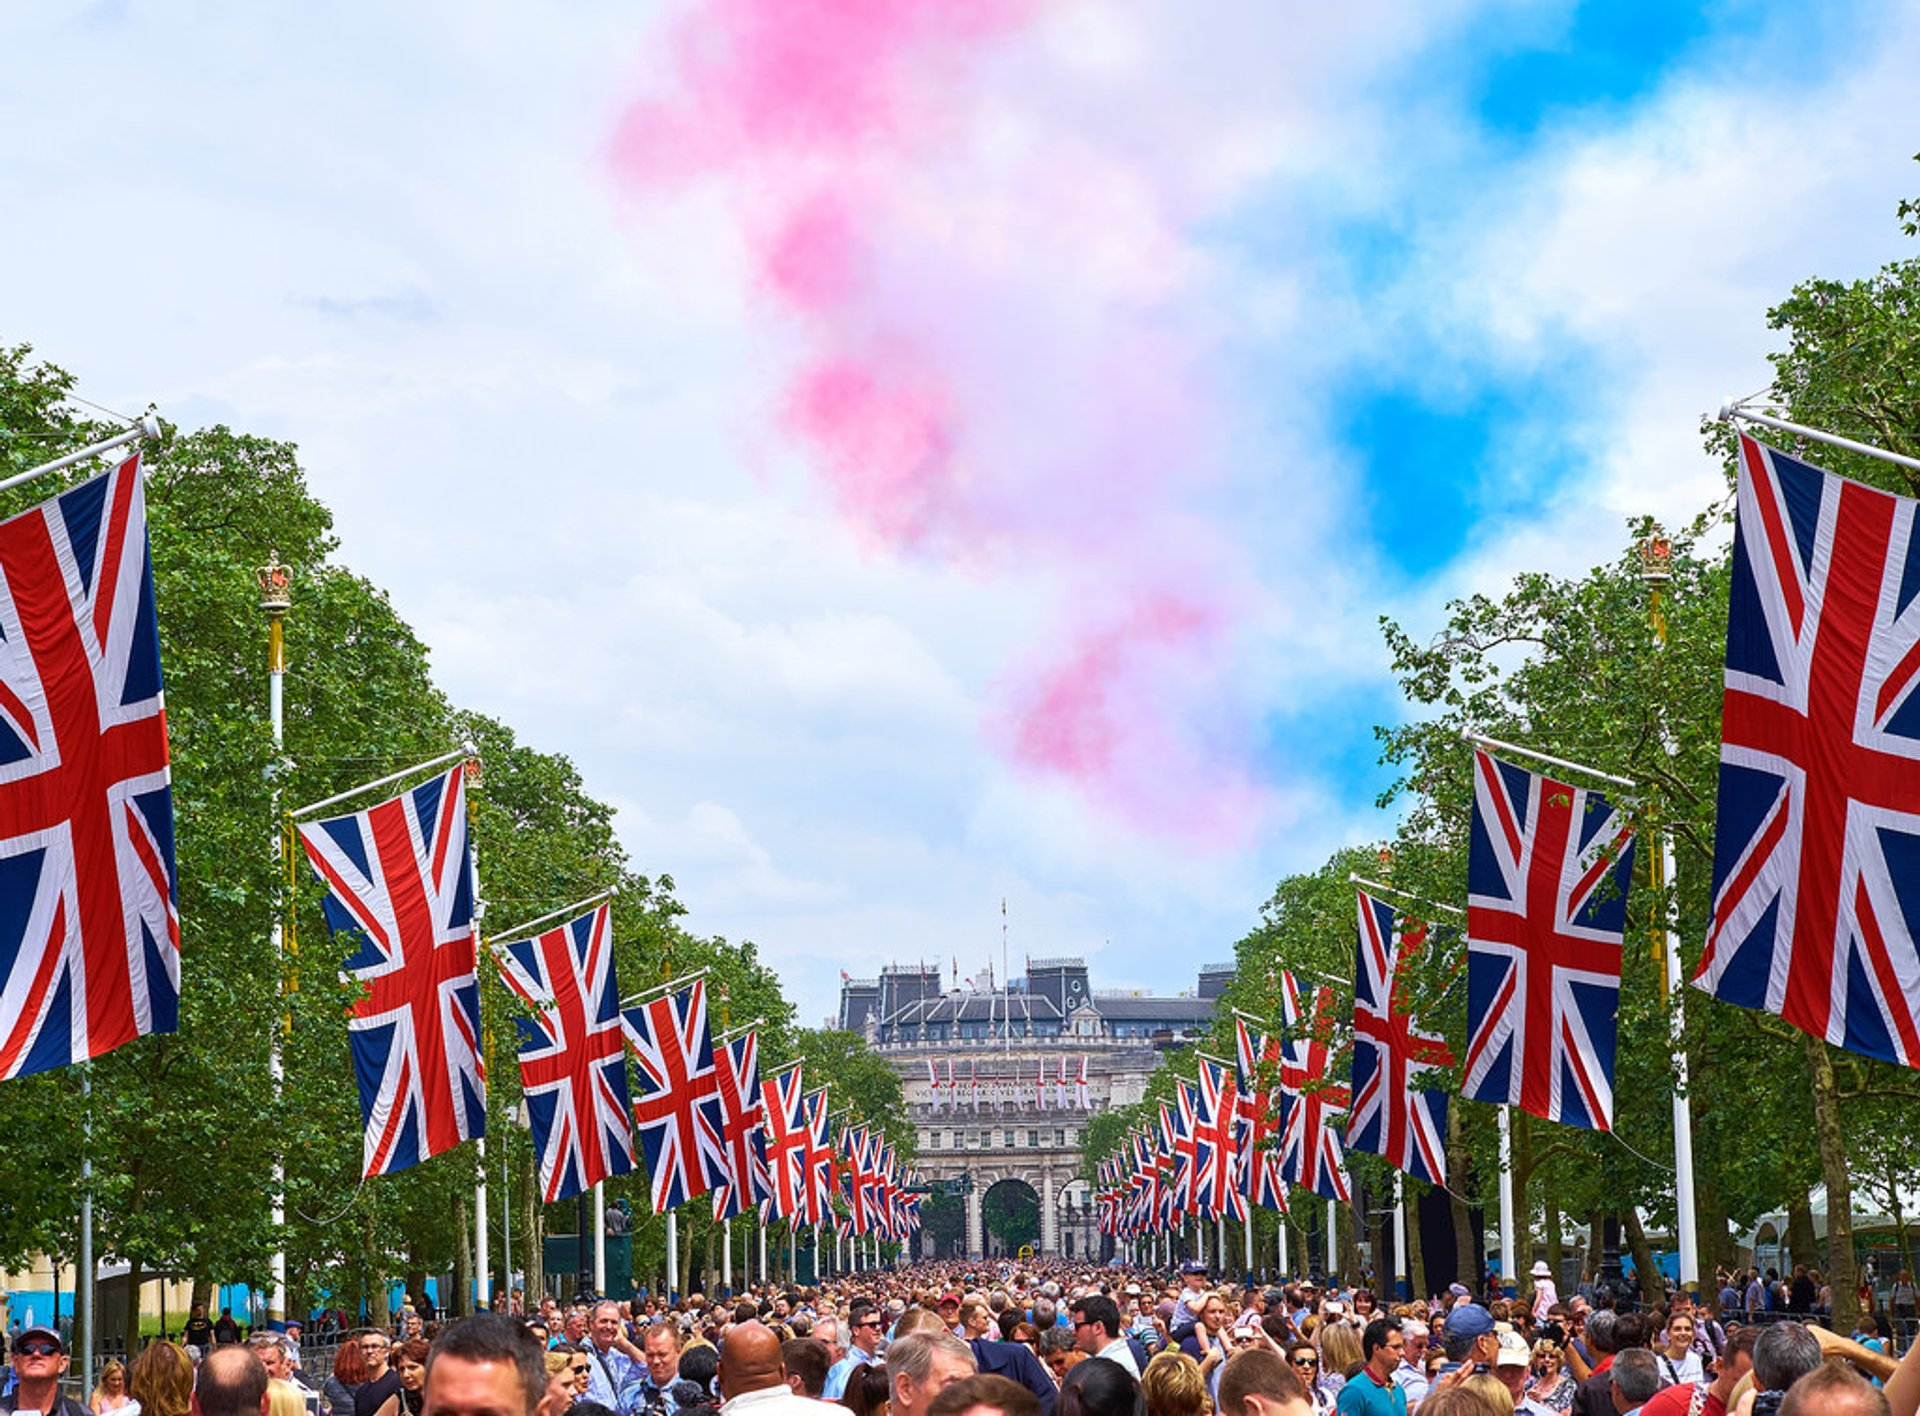 Trooping the Colour & The Queen's Birthday Parade in London - Best Season 2020